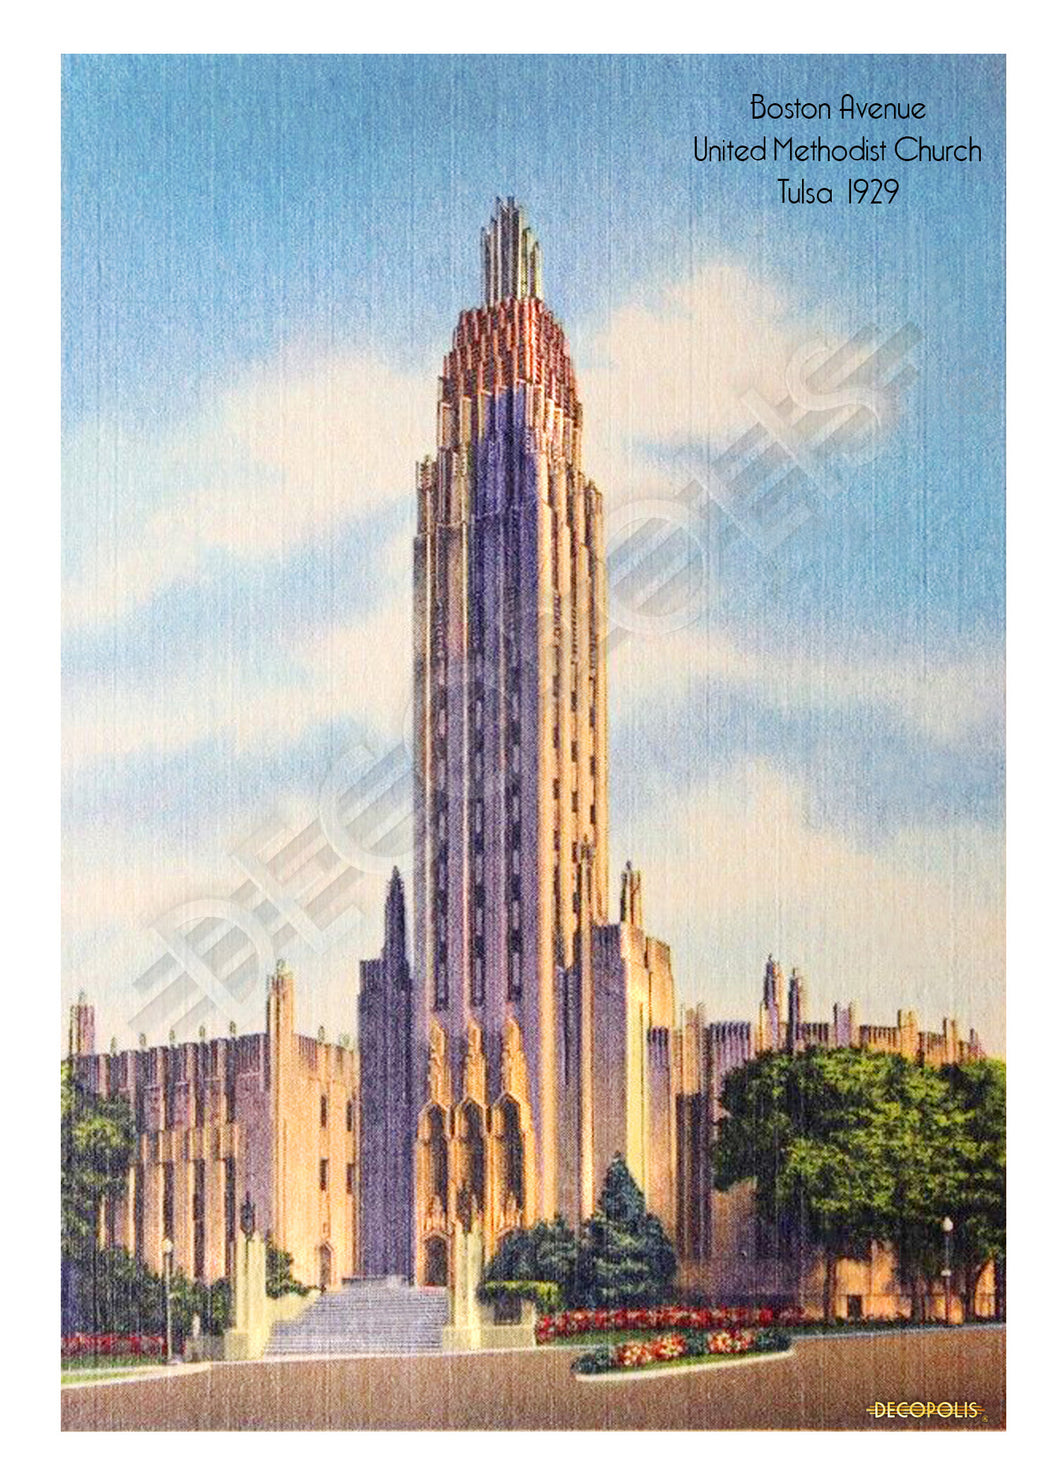 Decopolis Postcard - Boston Ave. Church